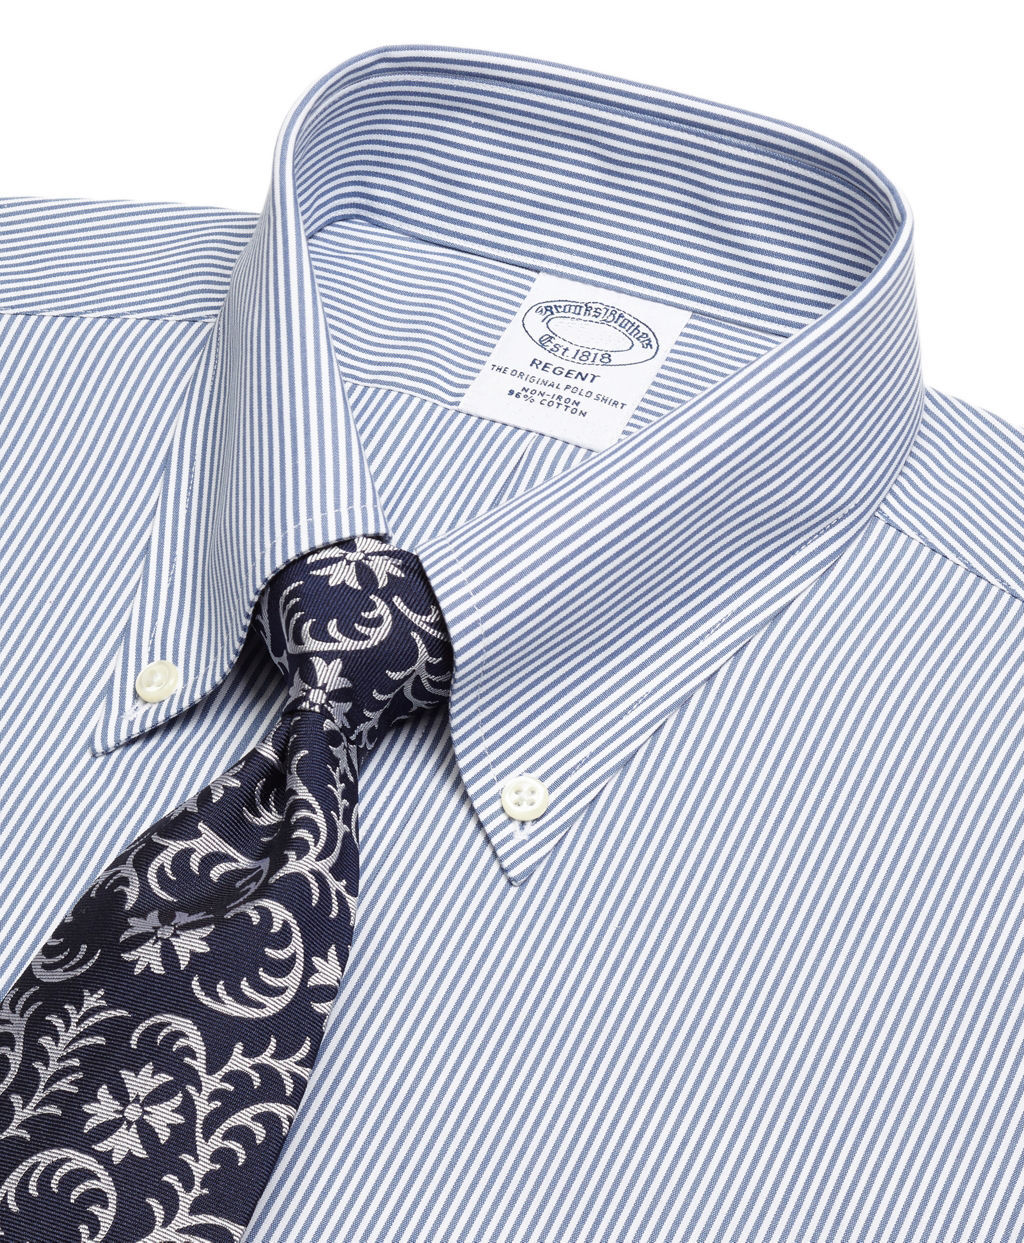 3613 Brooks Brothers Mens Blue White Striped Regent Fit Dress Shirt Sz 16 34/35